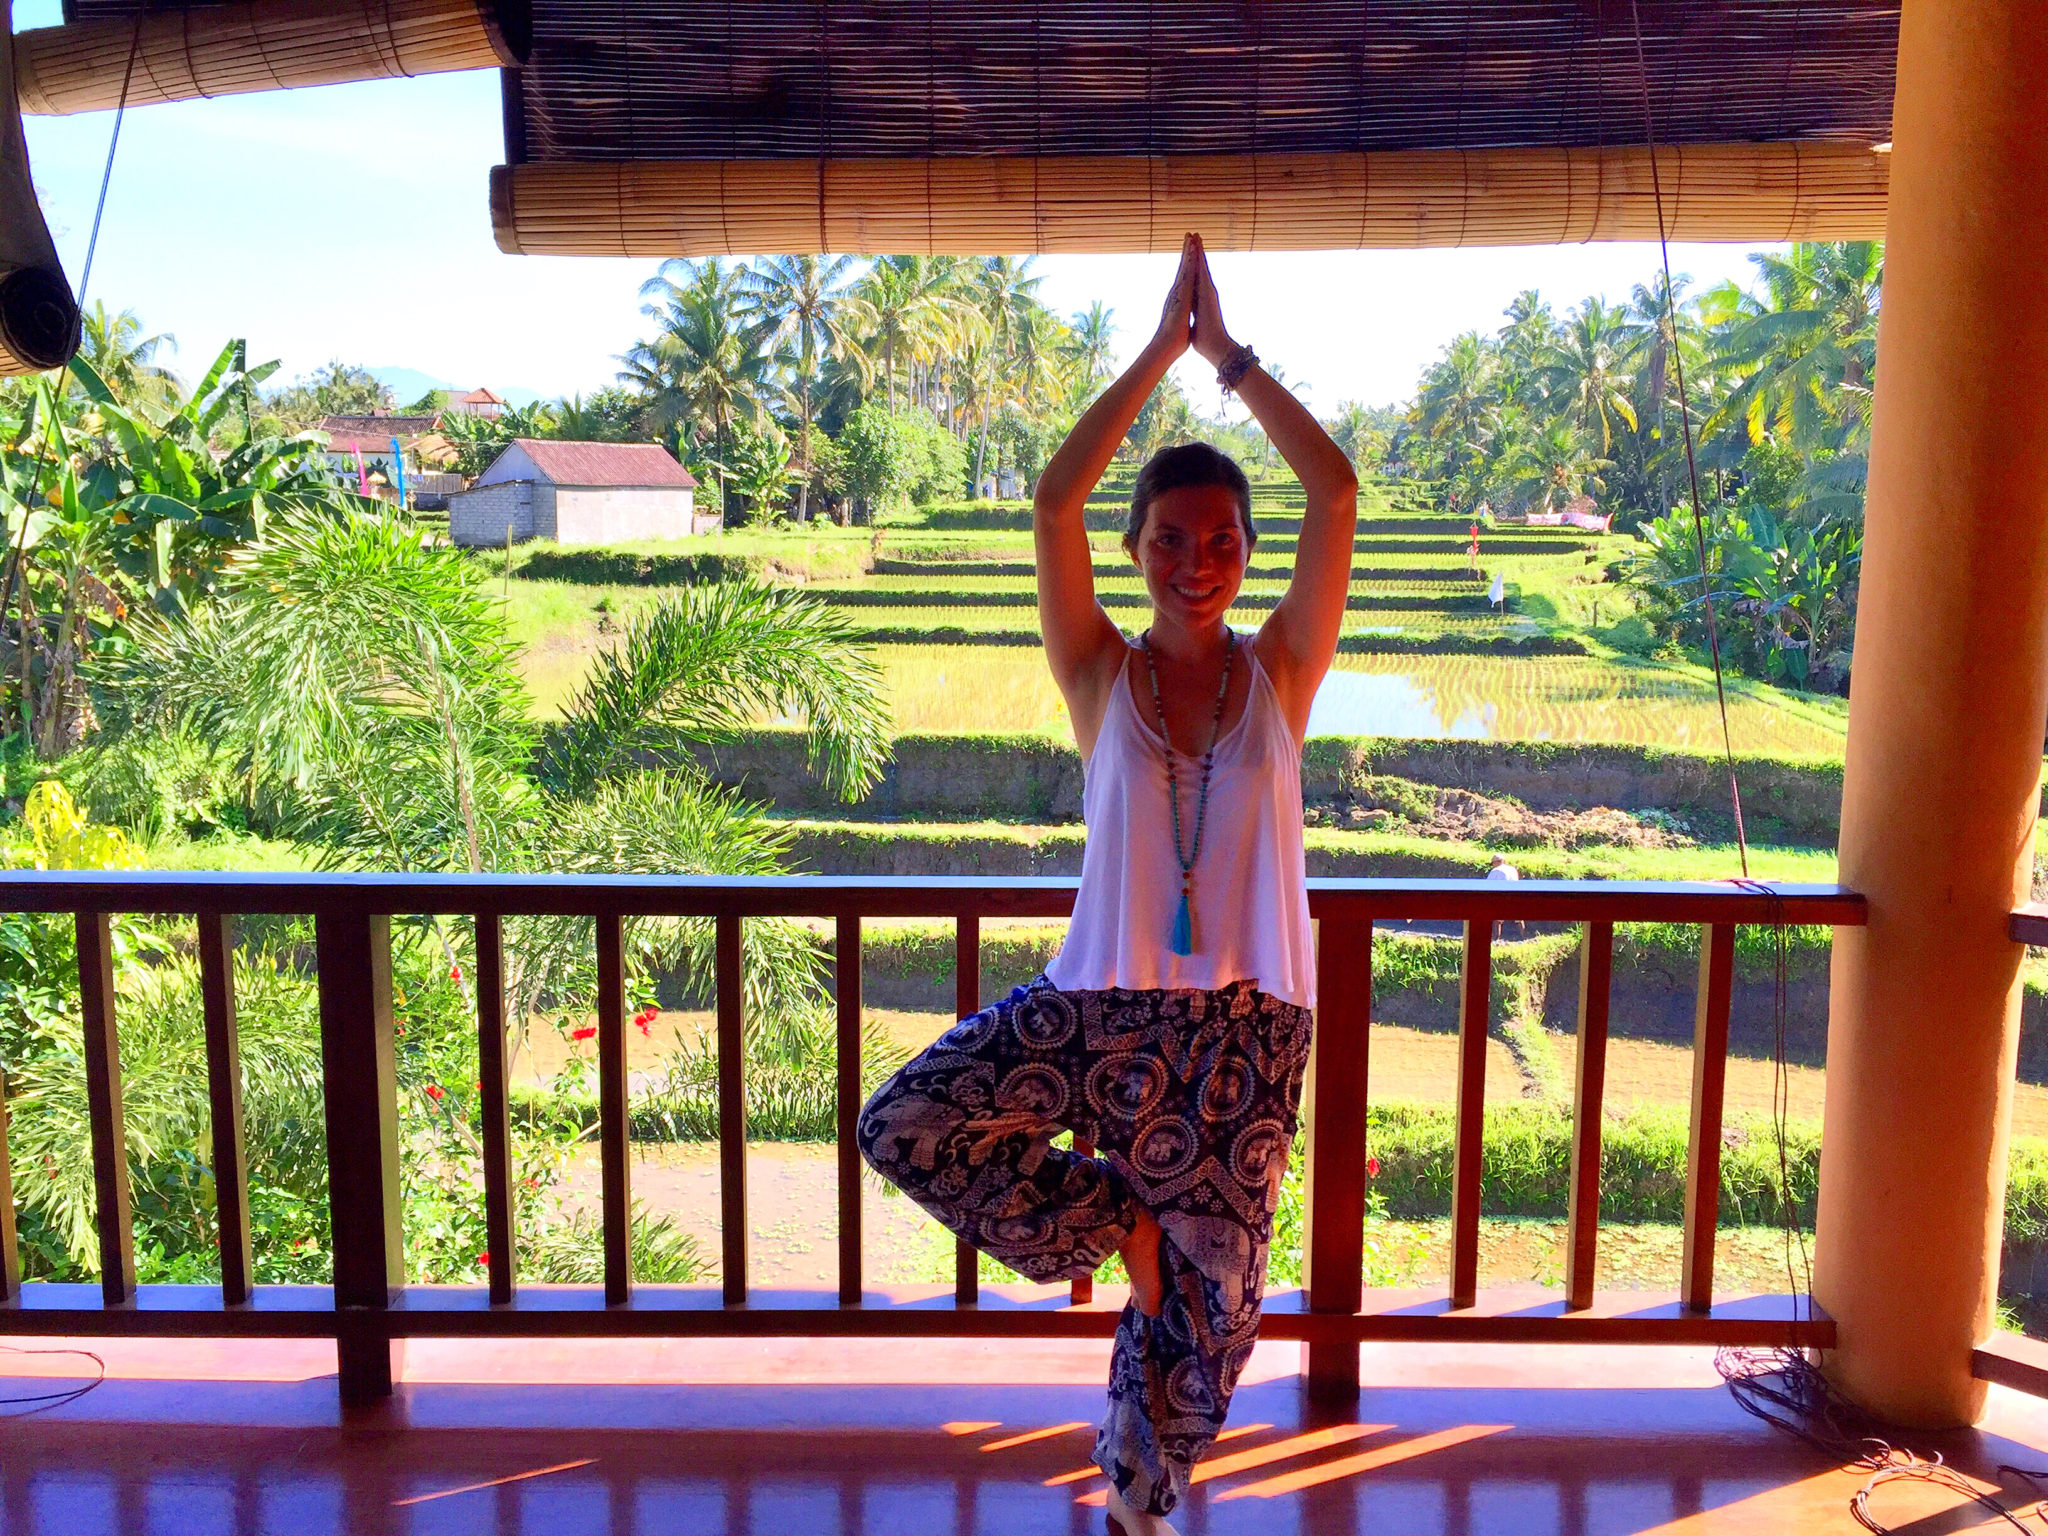 Yoga pose at Ubud Yoga House in Bali | © Nikki Vargas